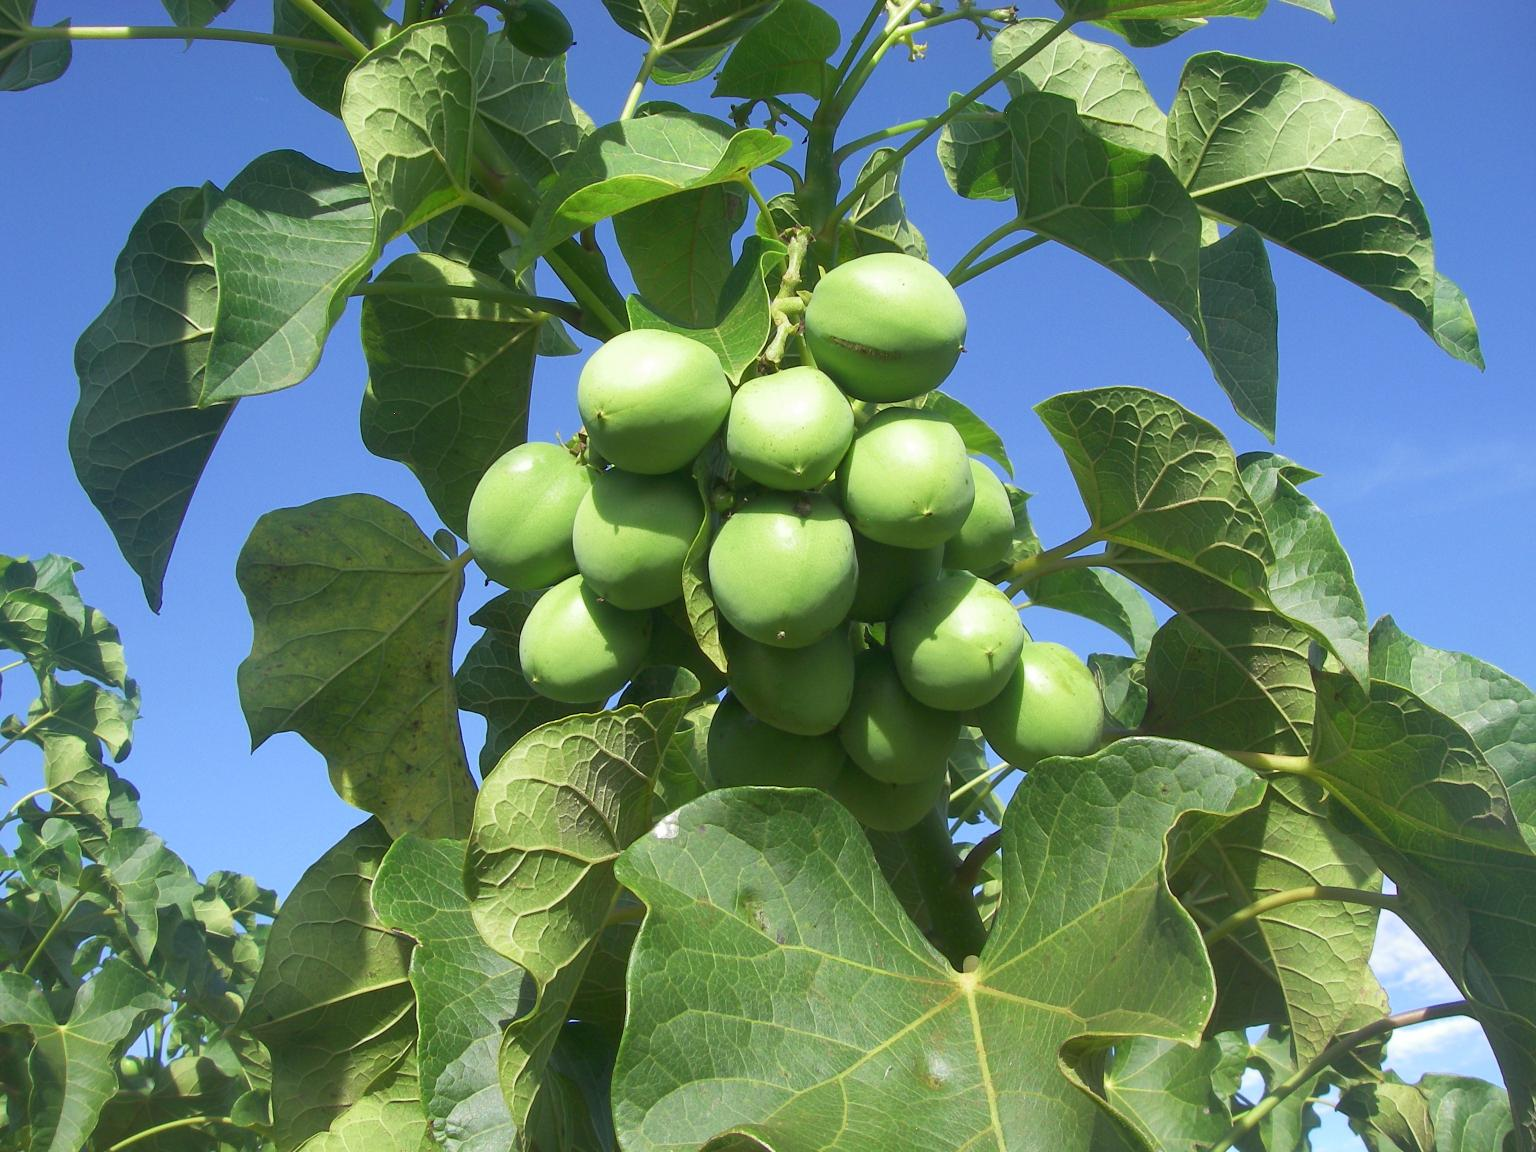 Jatropha plants thrive well in tropical or sub-tropical climates